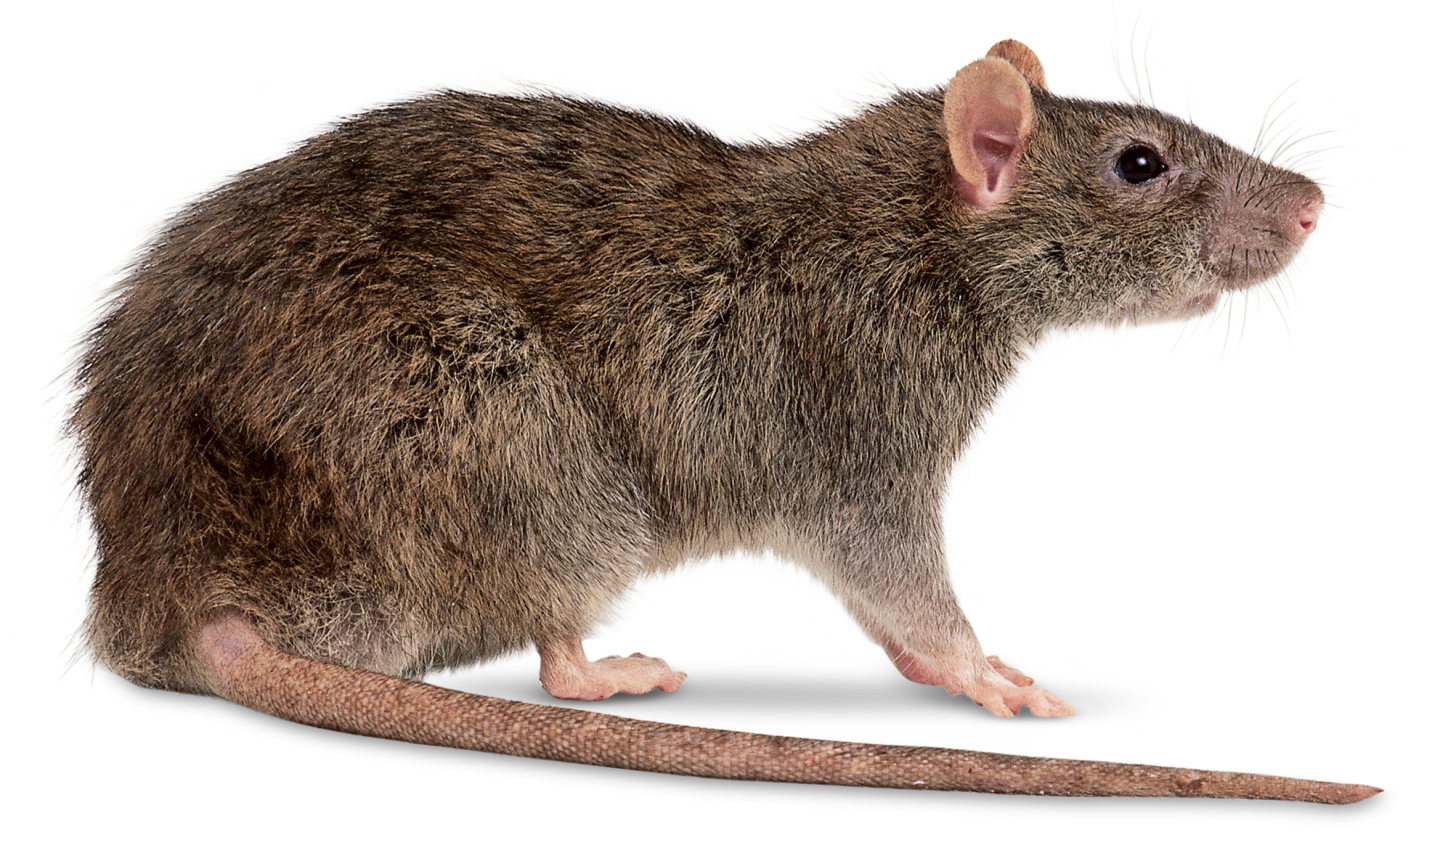 Seven Rat Facts that will Make You Cringe